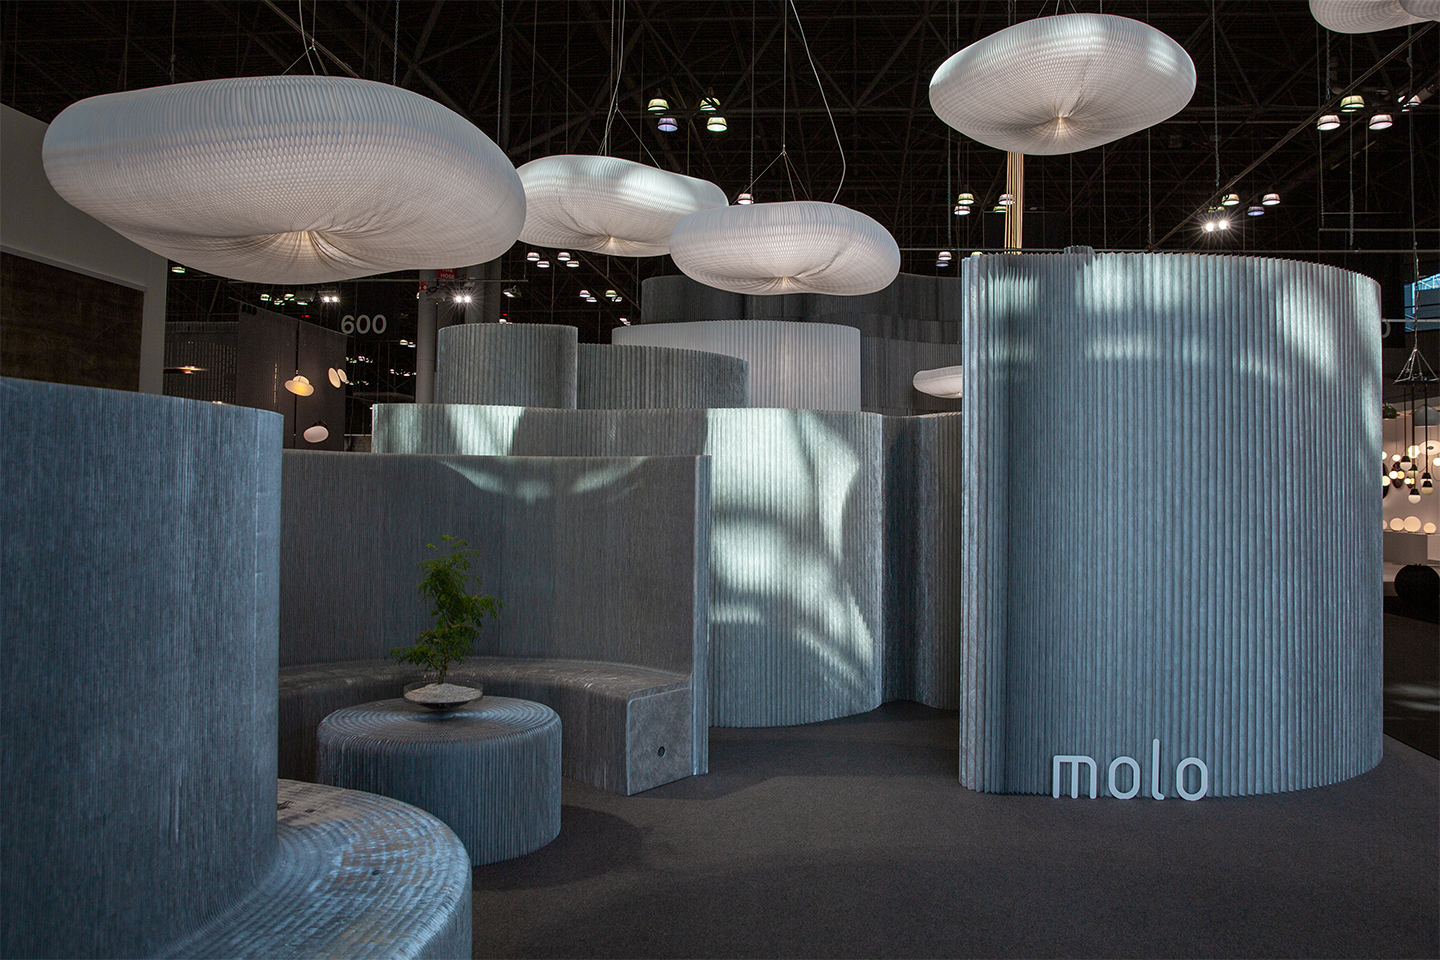 molo's display at ICFF 2019 - aluminum soft collection launch